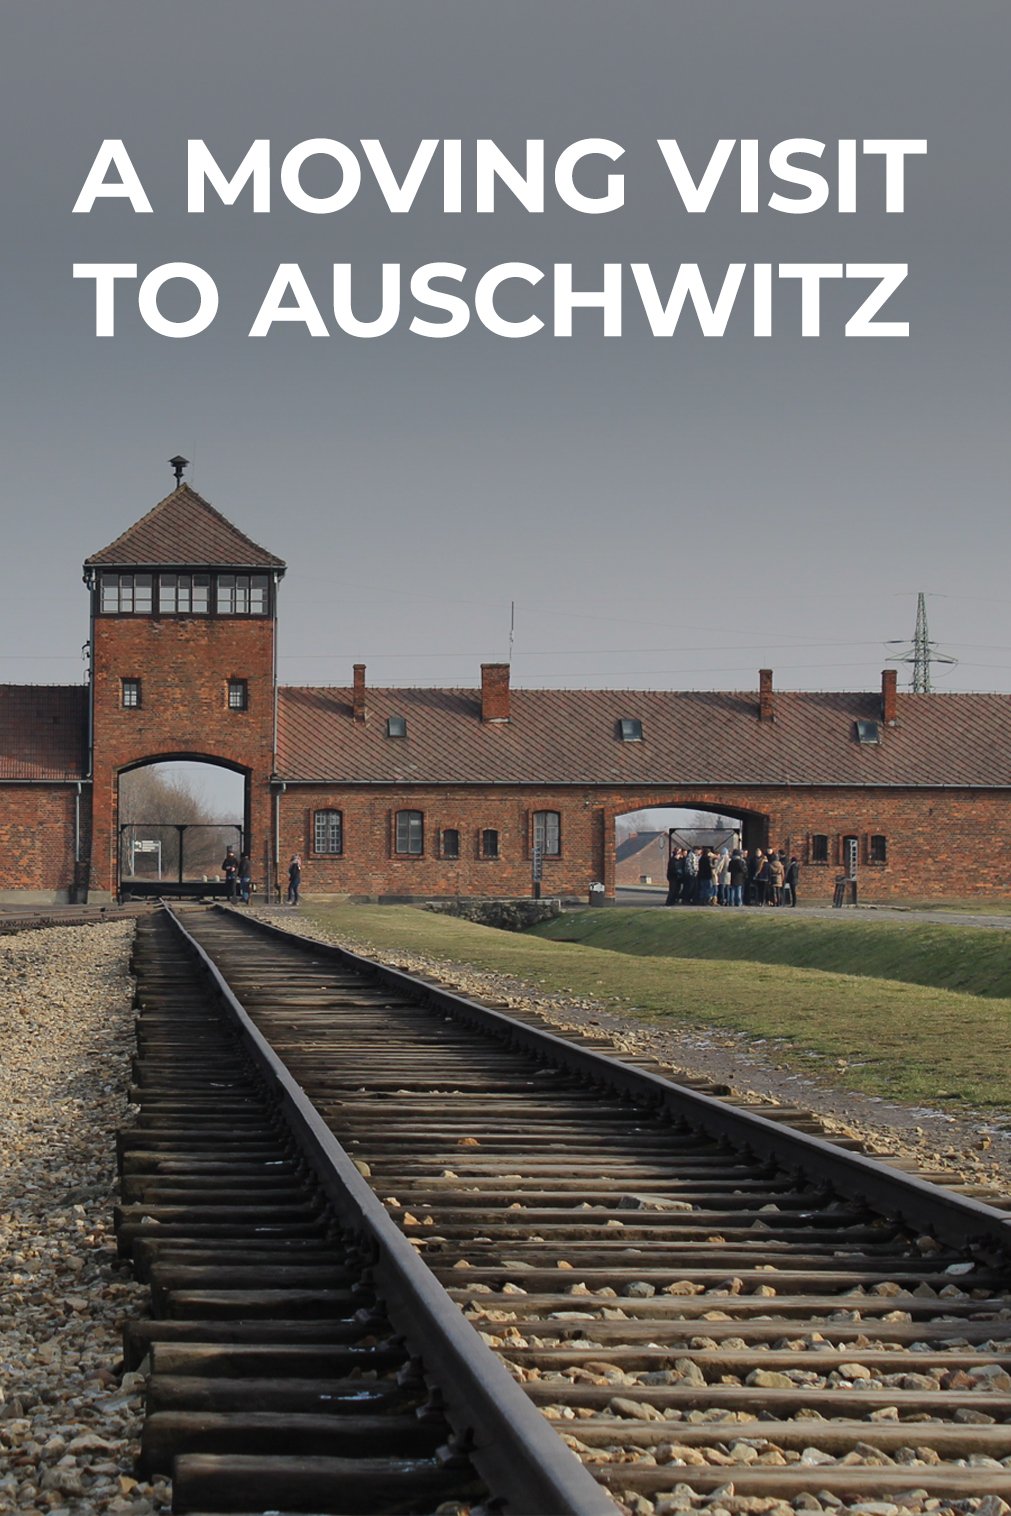 Auschwitz is probably the most famous former concentration camp and site of mass genocide in the world. From 1940-1945 around one and a half million people, mainly Jewish, were tortured and murdered there at the hands of the Nazi regime. It's a very surreal, educational and eye-opening experience, somewhere everybody should visit if they can.